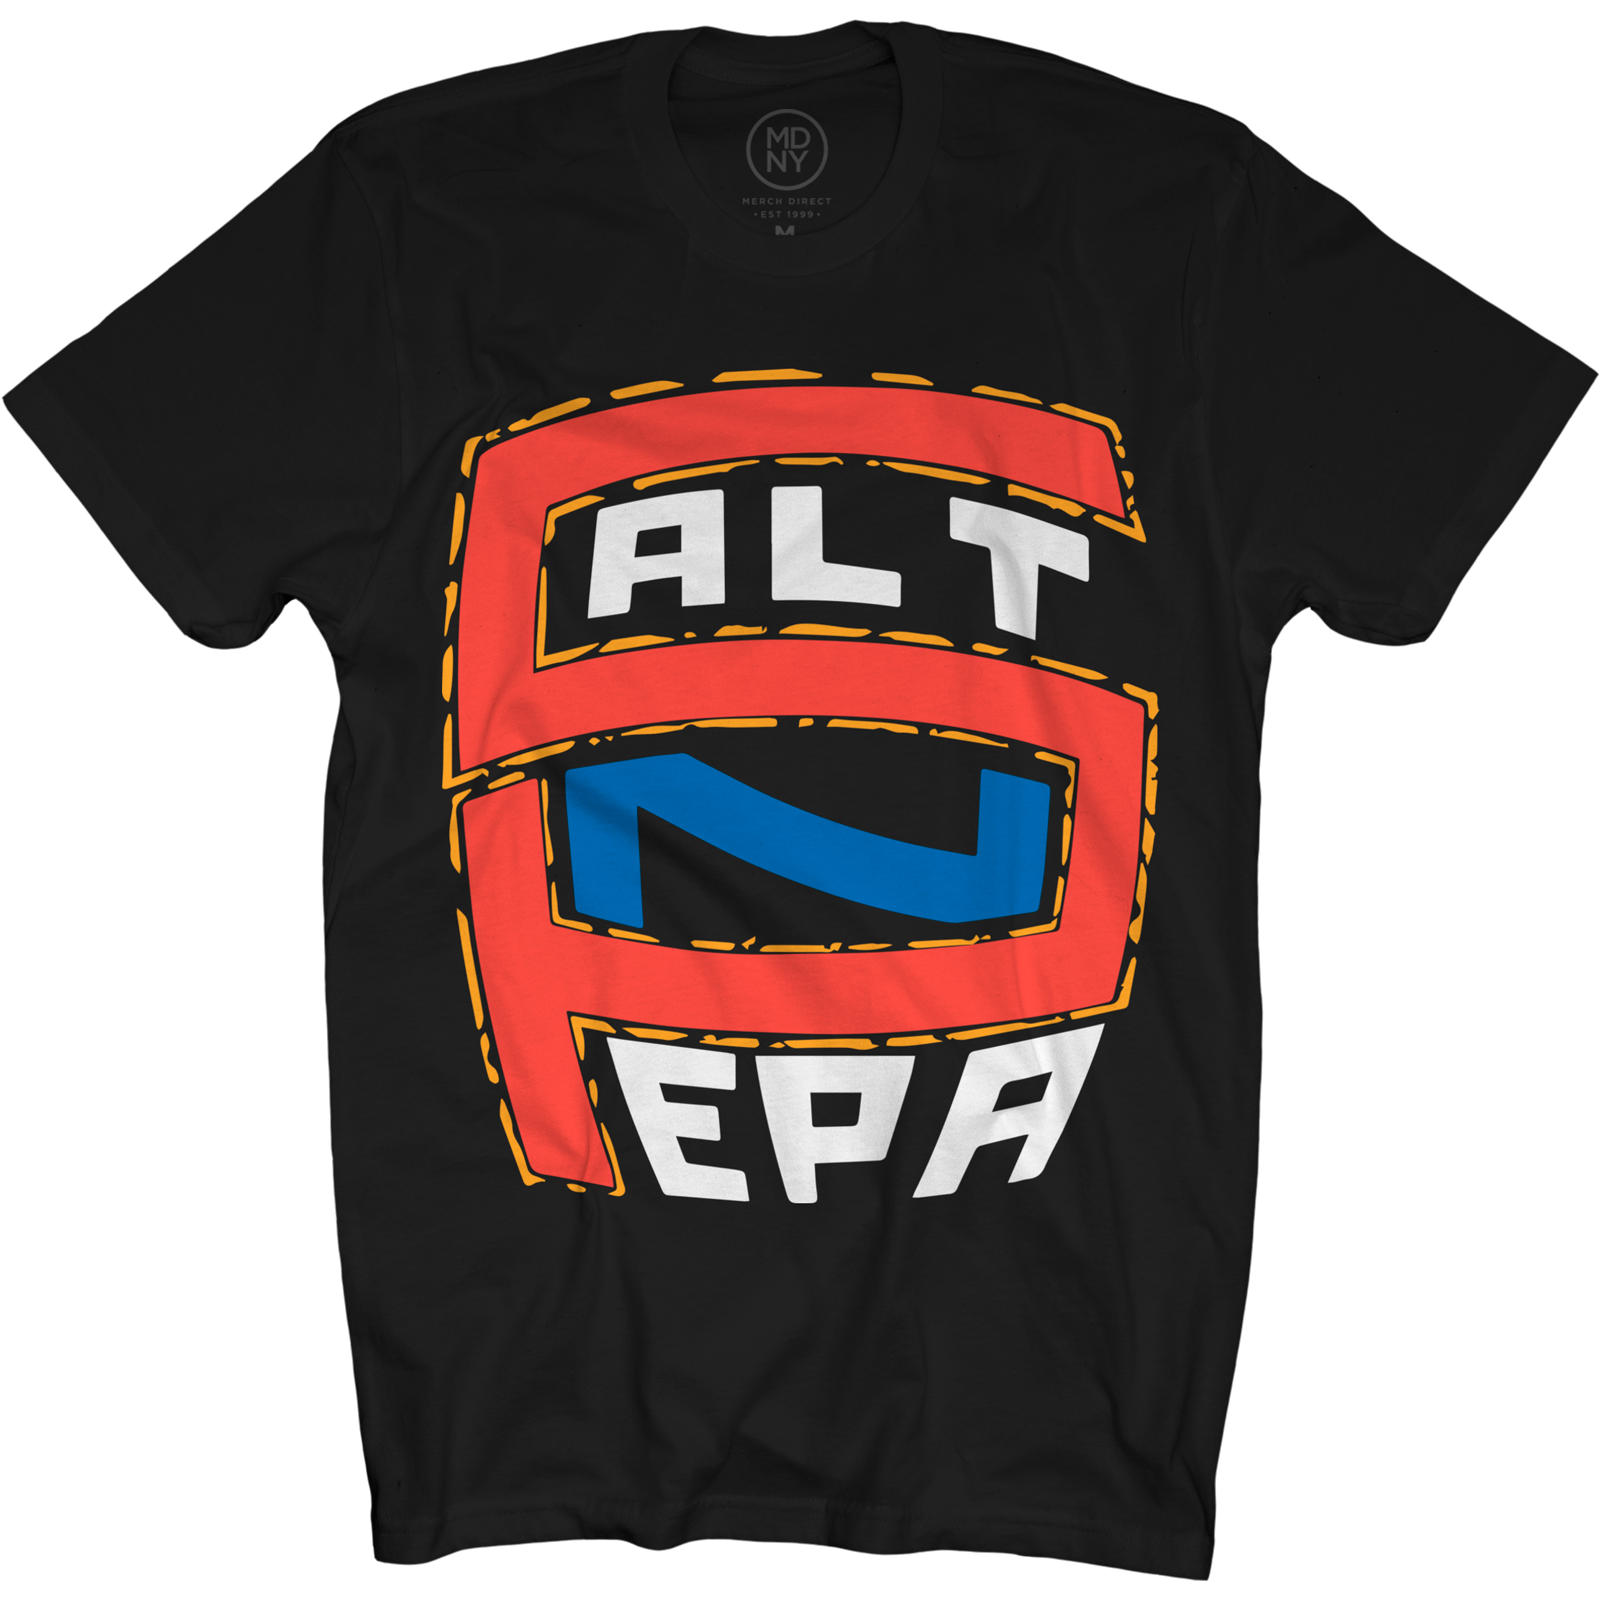 Red & Blue Logo on Black T-Shirt